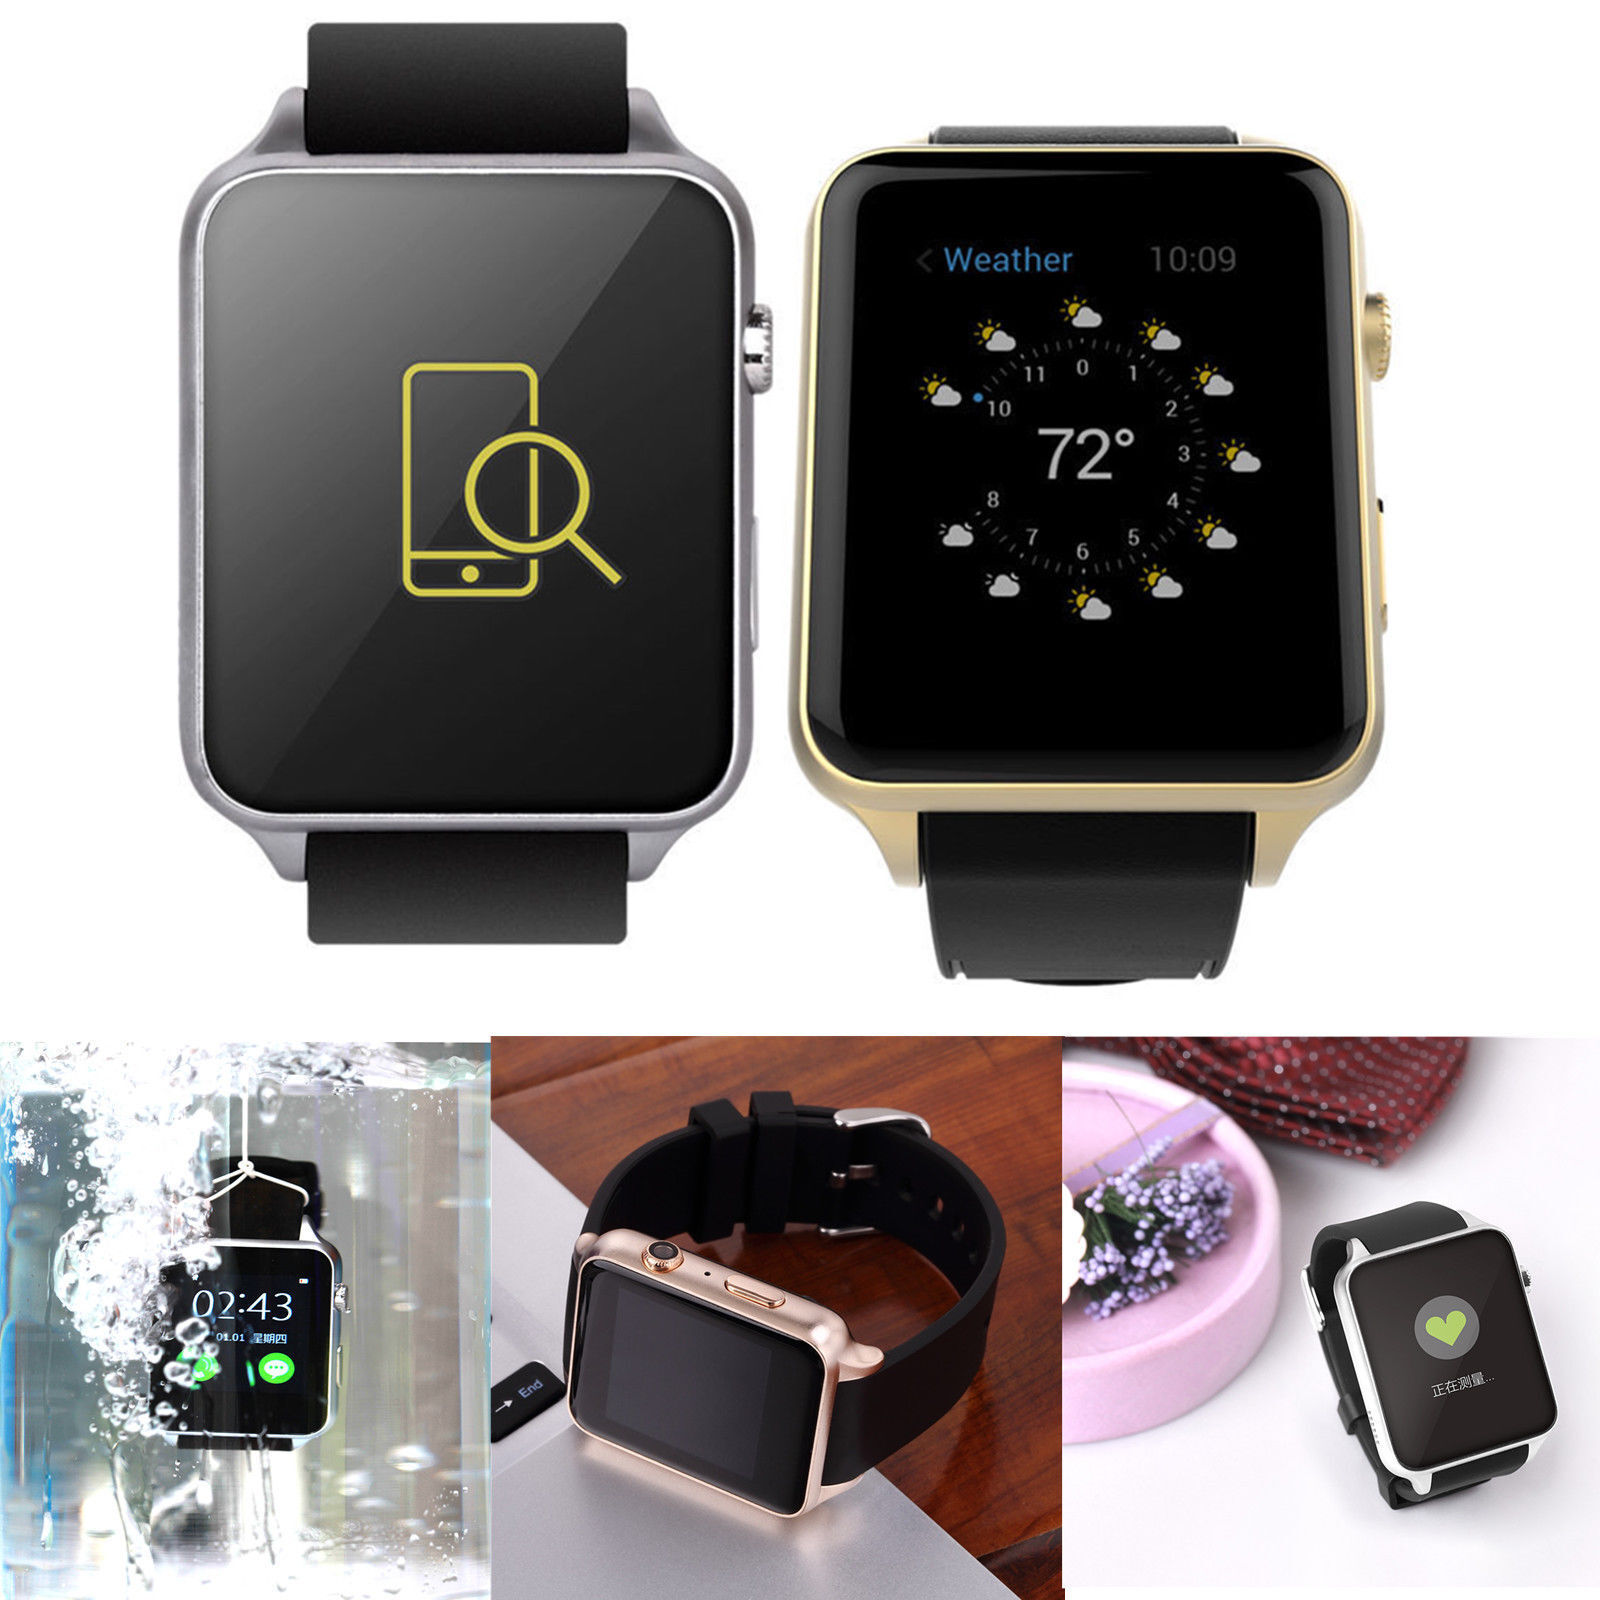 that spacelock even unlocker this i convenient of watches iphone door hero extensions the bundle would apple includes and apps watch phone an created since more make we are both projects a